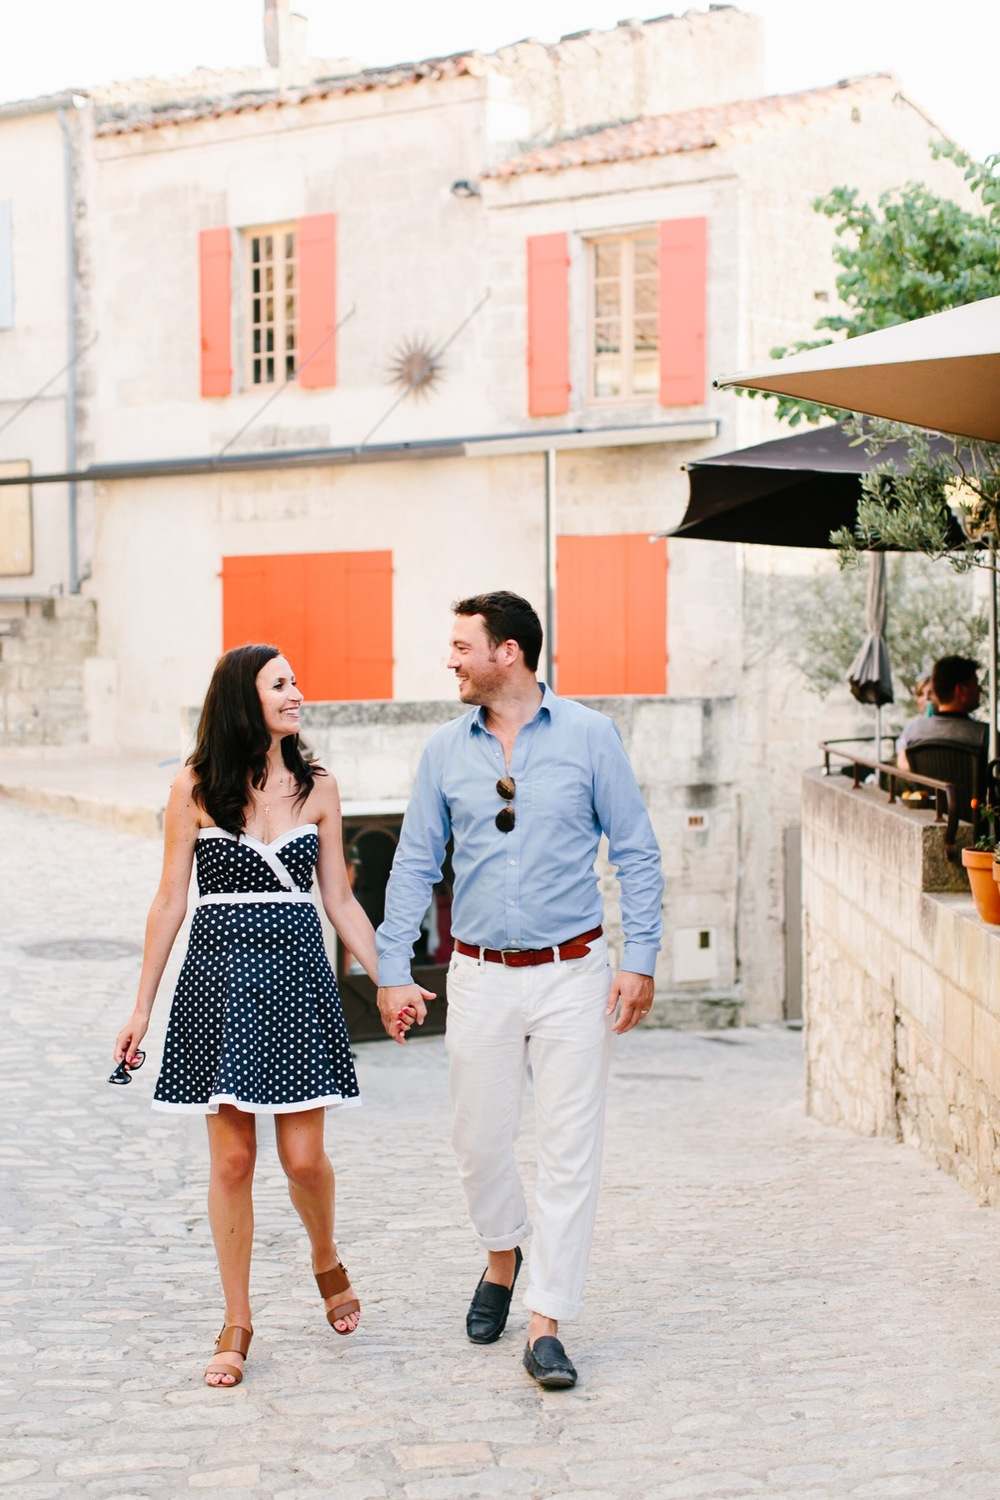 couple celebrating anniversary in provence france